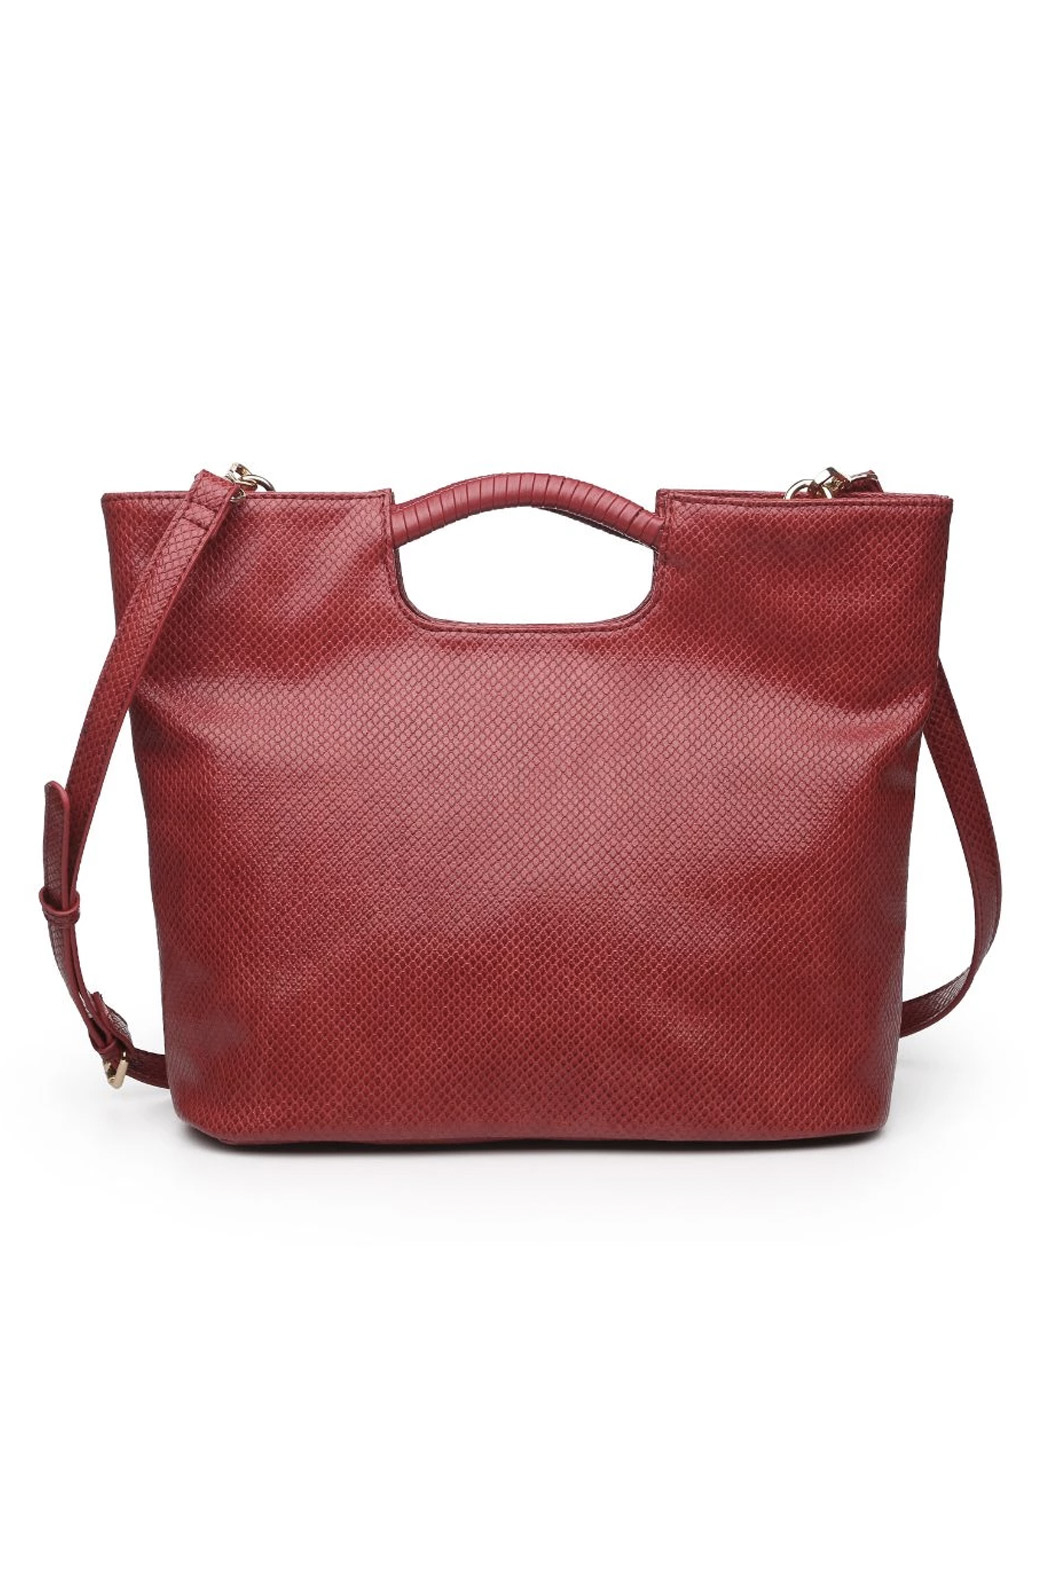 Urban Expressions Silas Vegan Leather Handbag - Back Cropped Image